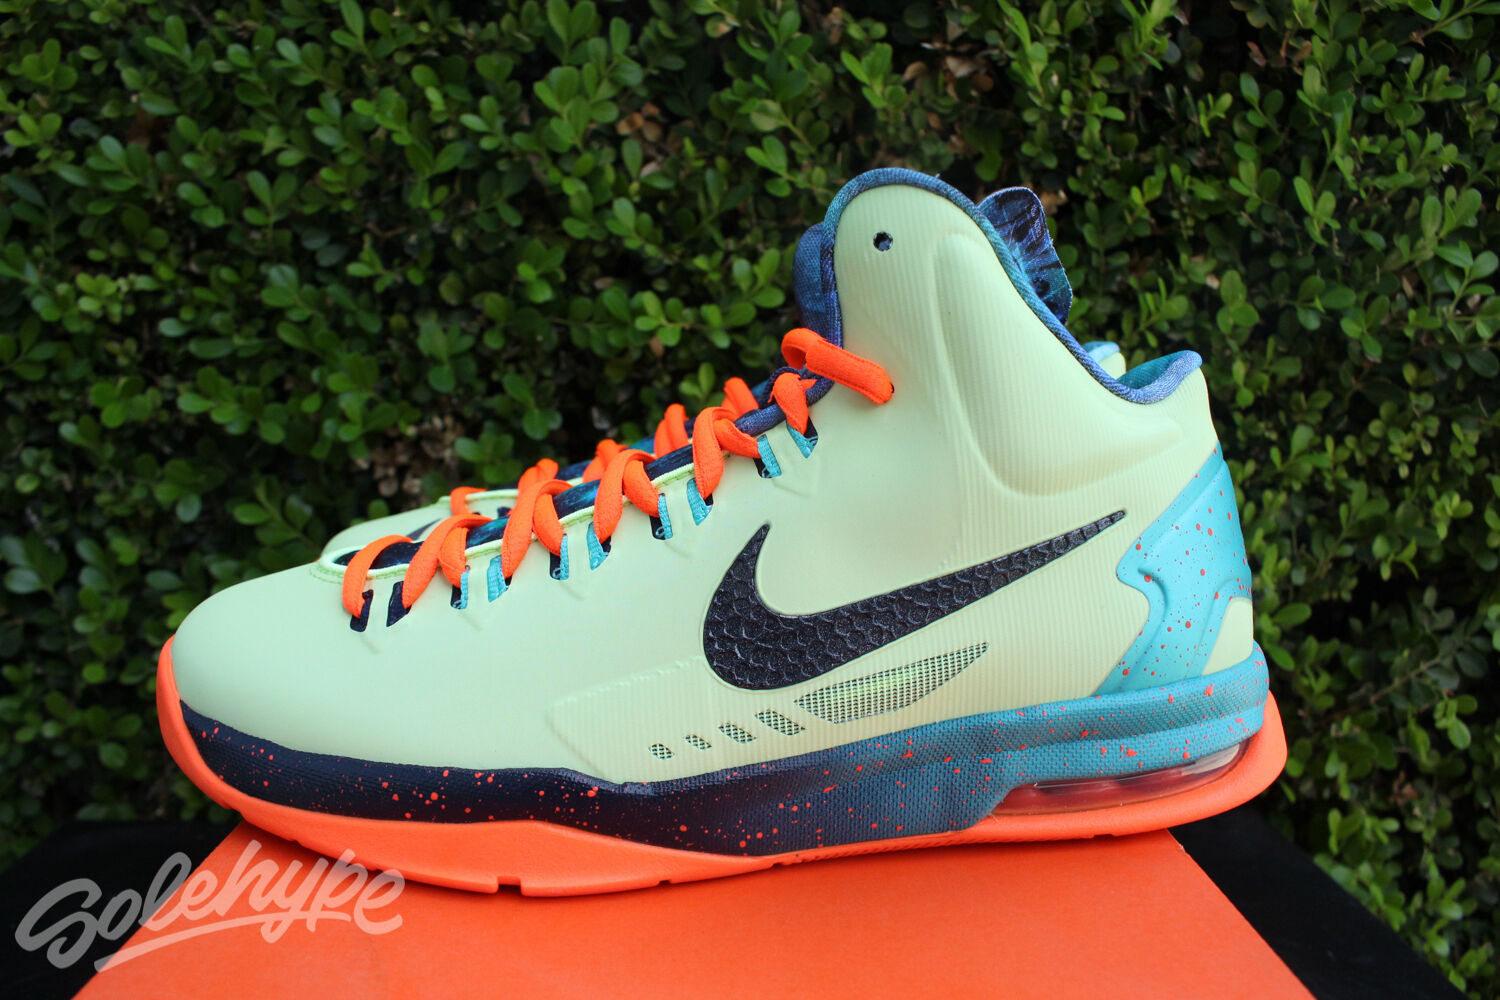 KD 5 (GS) 'Extraterrestrial' - 555641-301 - Size 5 -